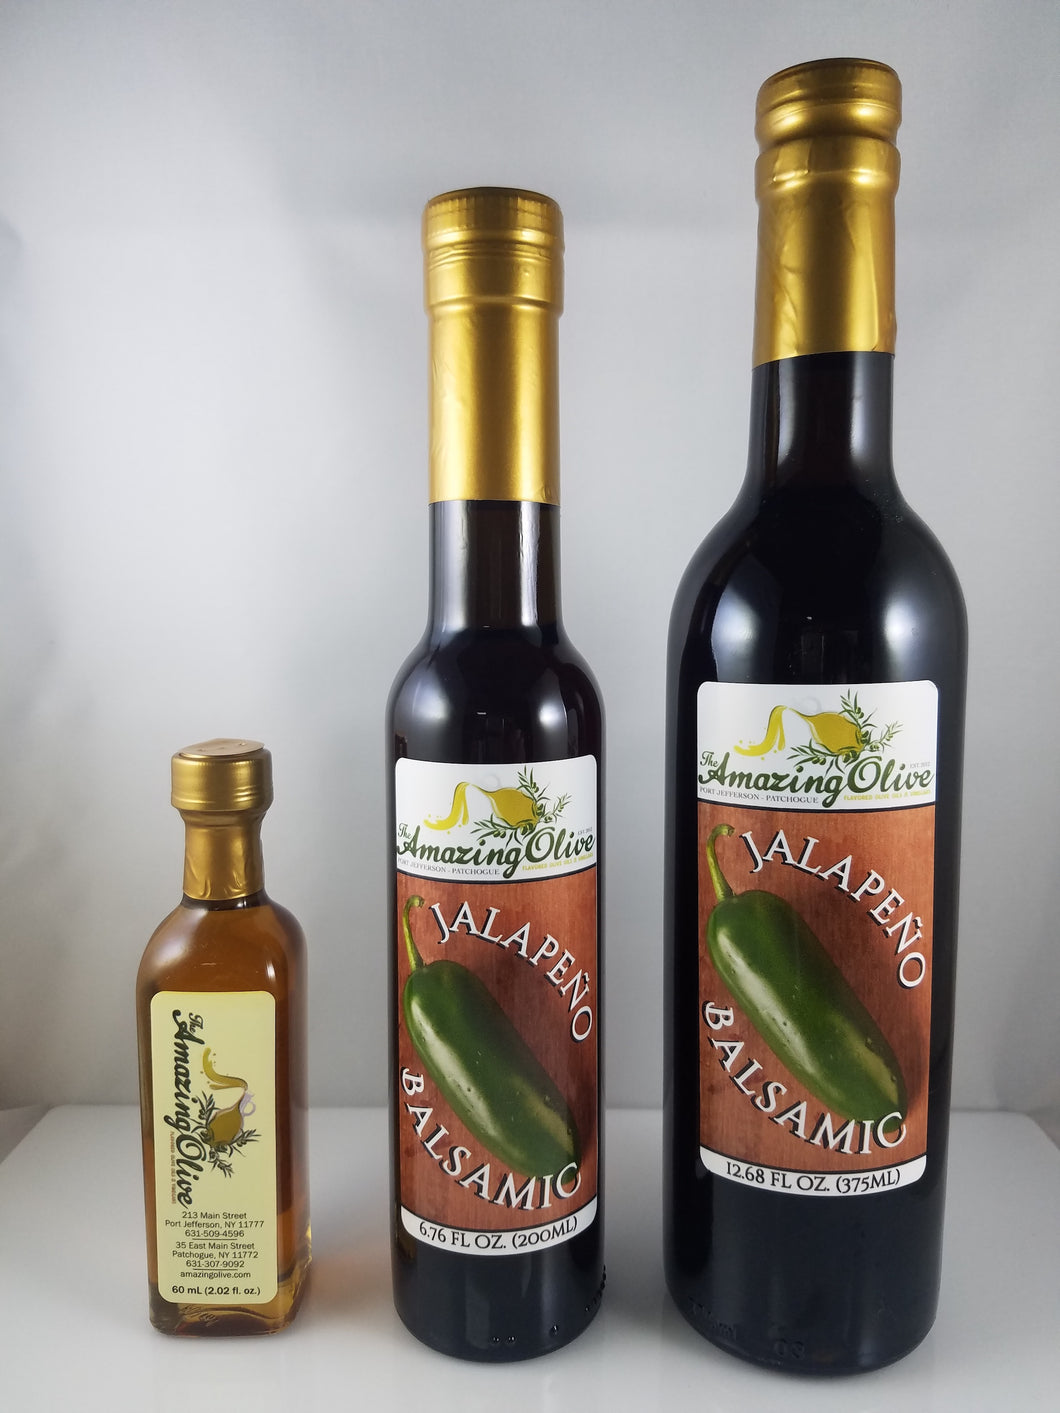 Jalapeno Balsamic Vinegar